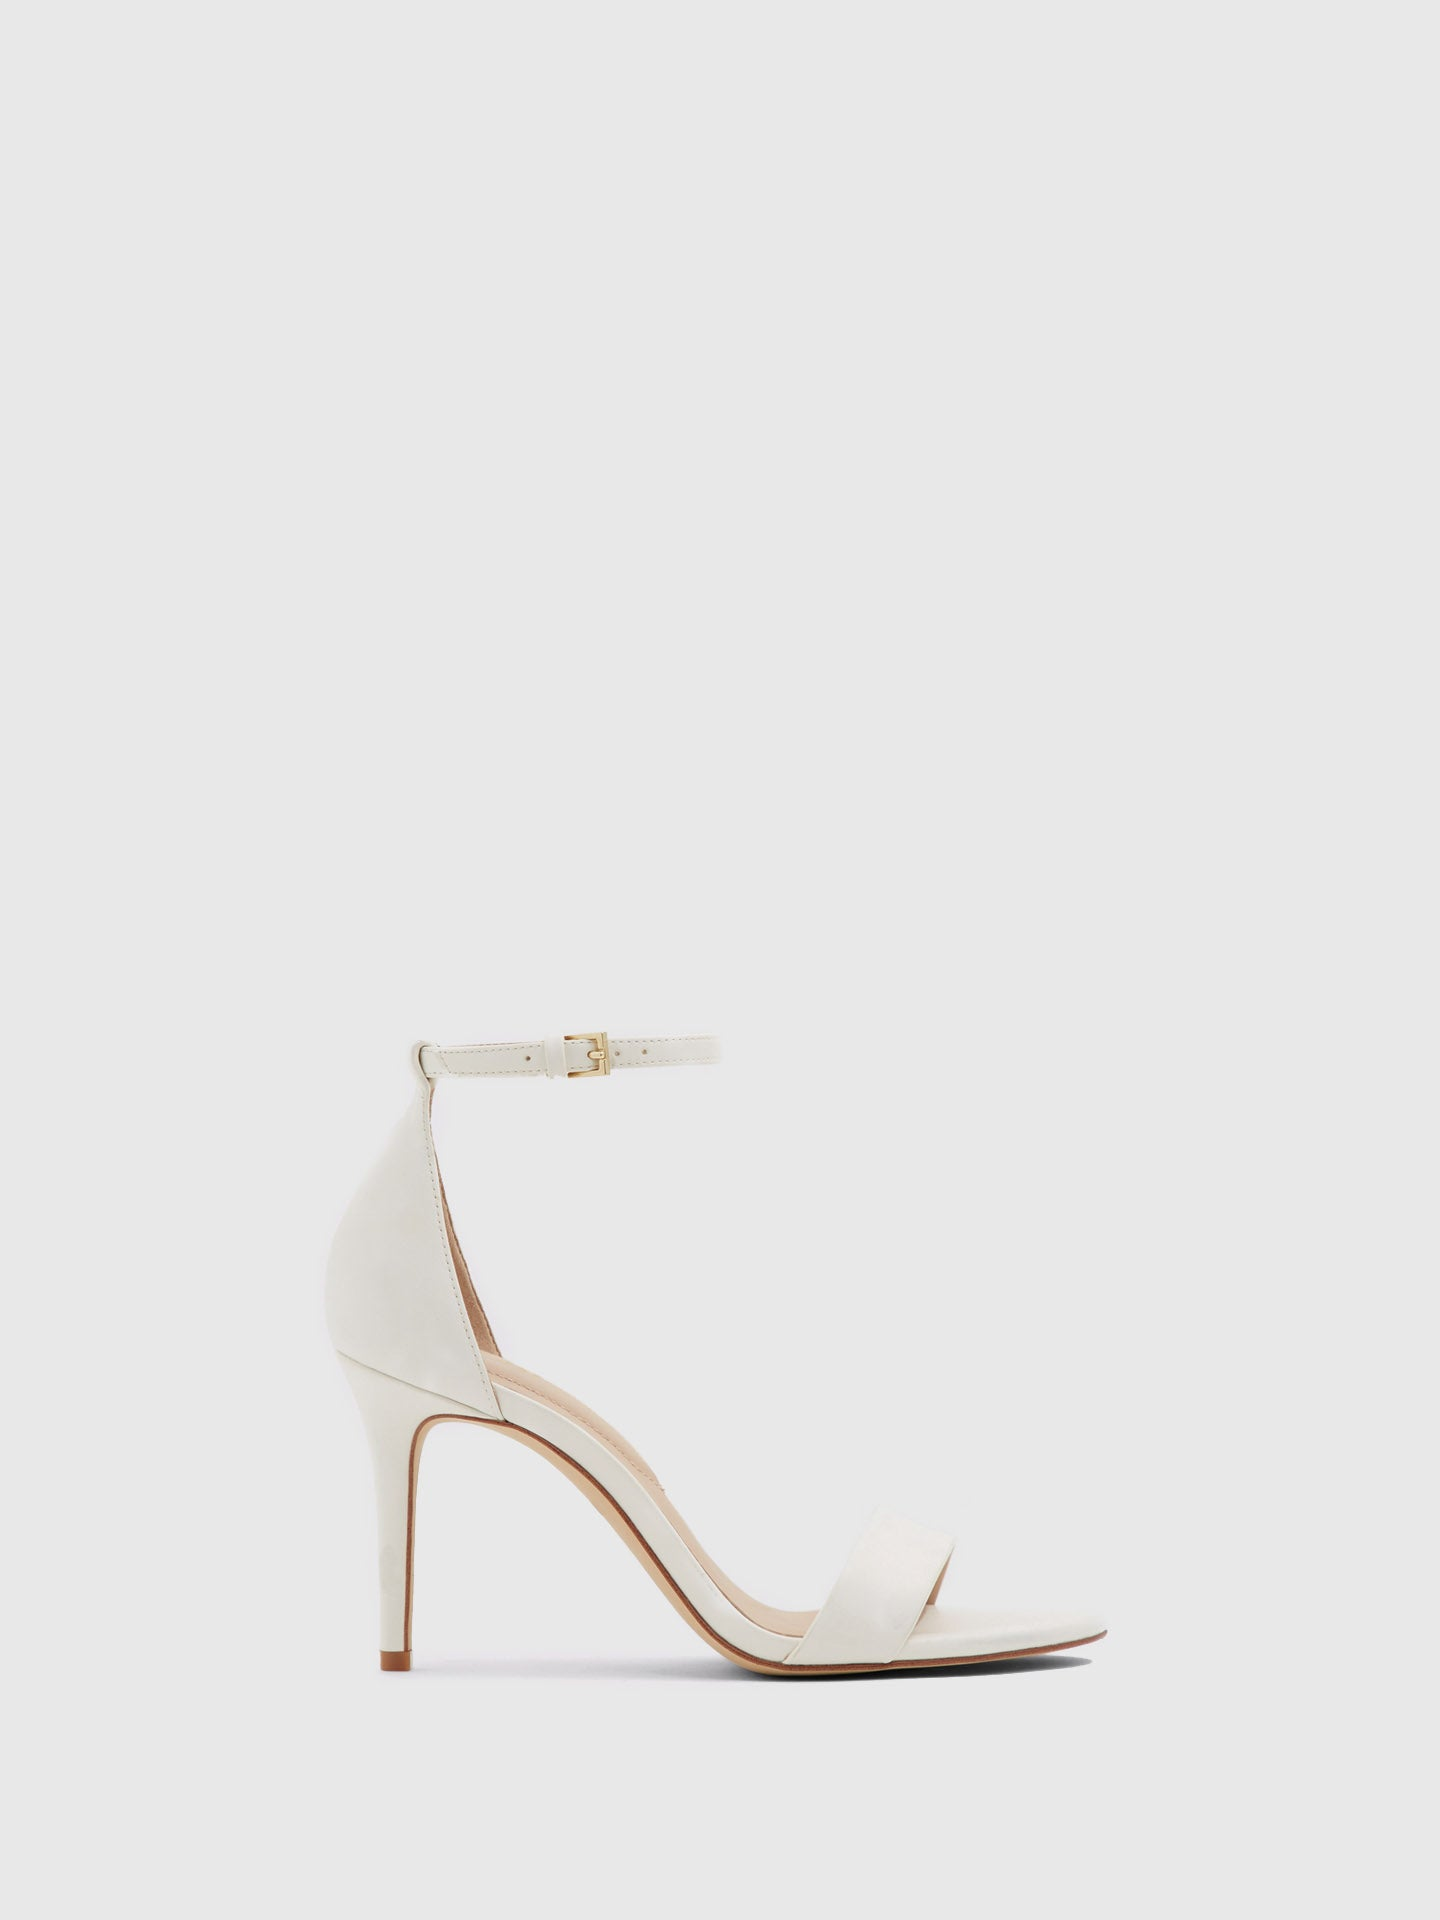 Aldo White Ankle Strap Sandals